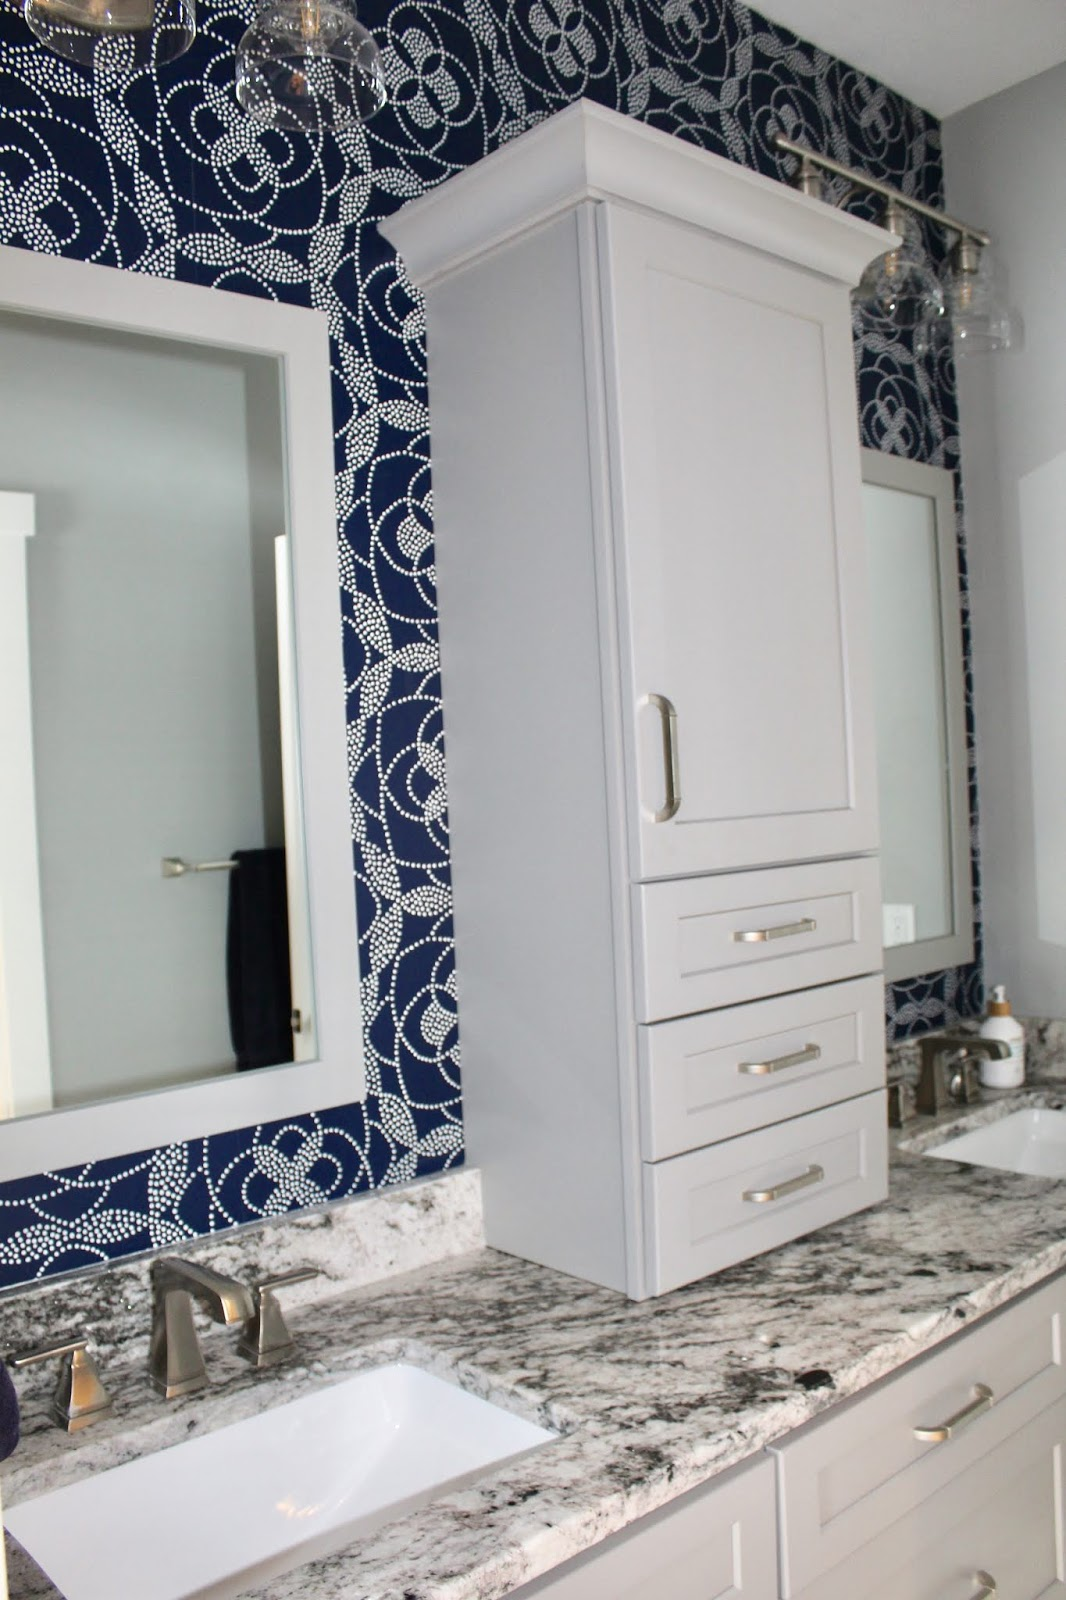 Wallpaper accent wall in this lovely bathroom.